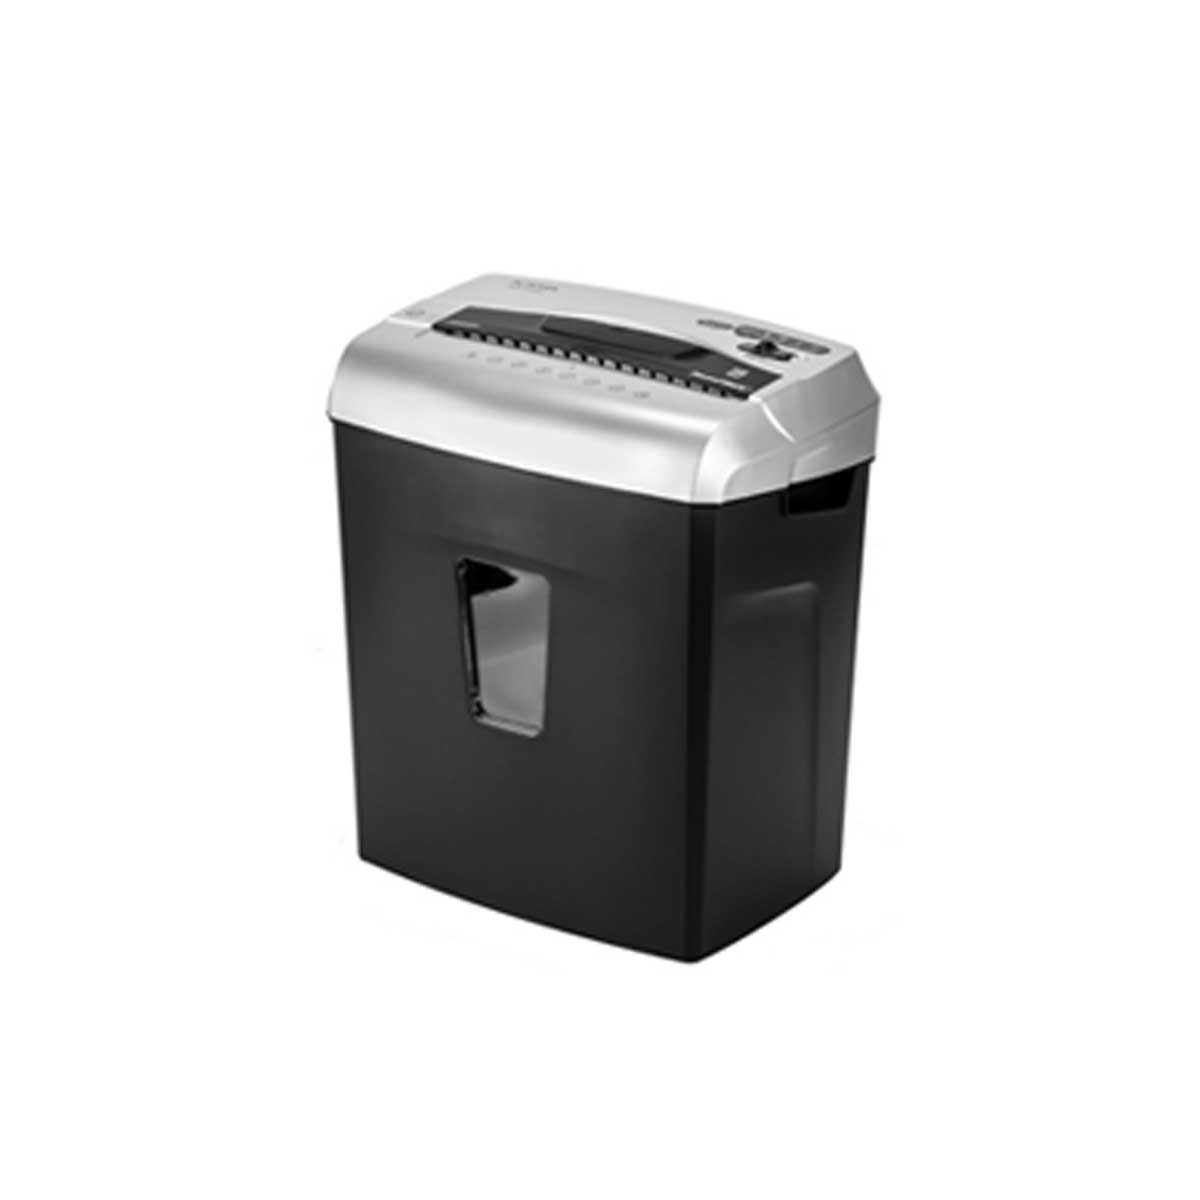 Aurora AS1030C 5 x 55mm Cross Cut Shredder